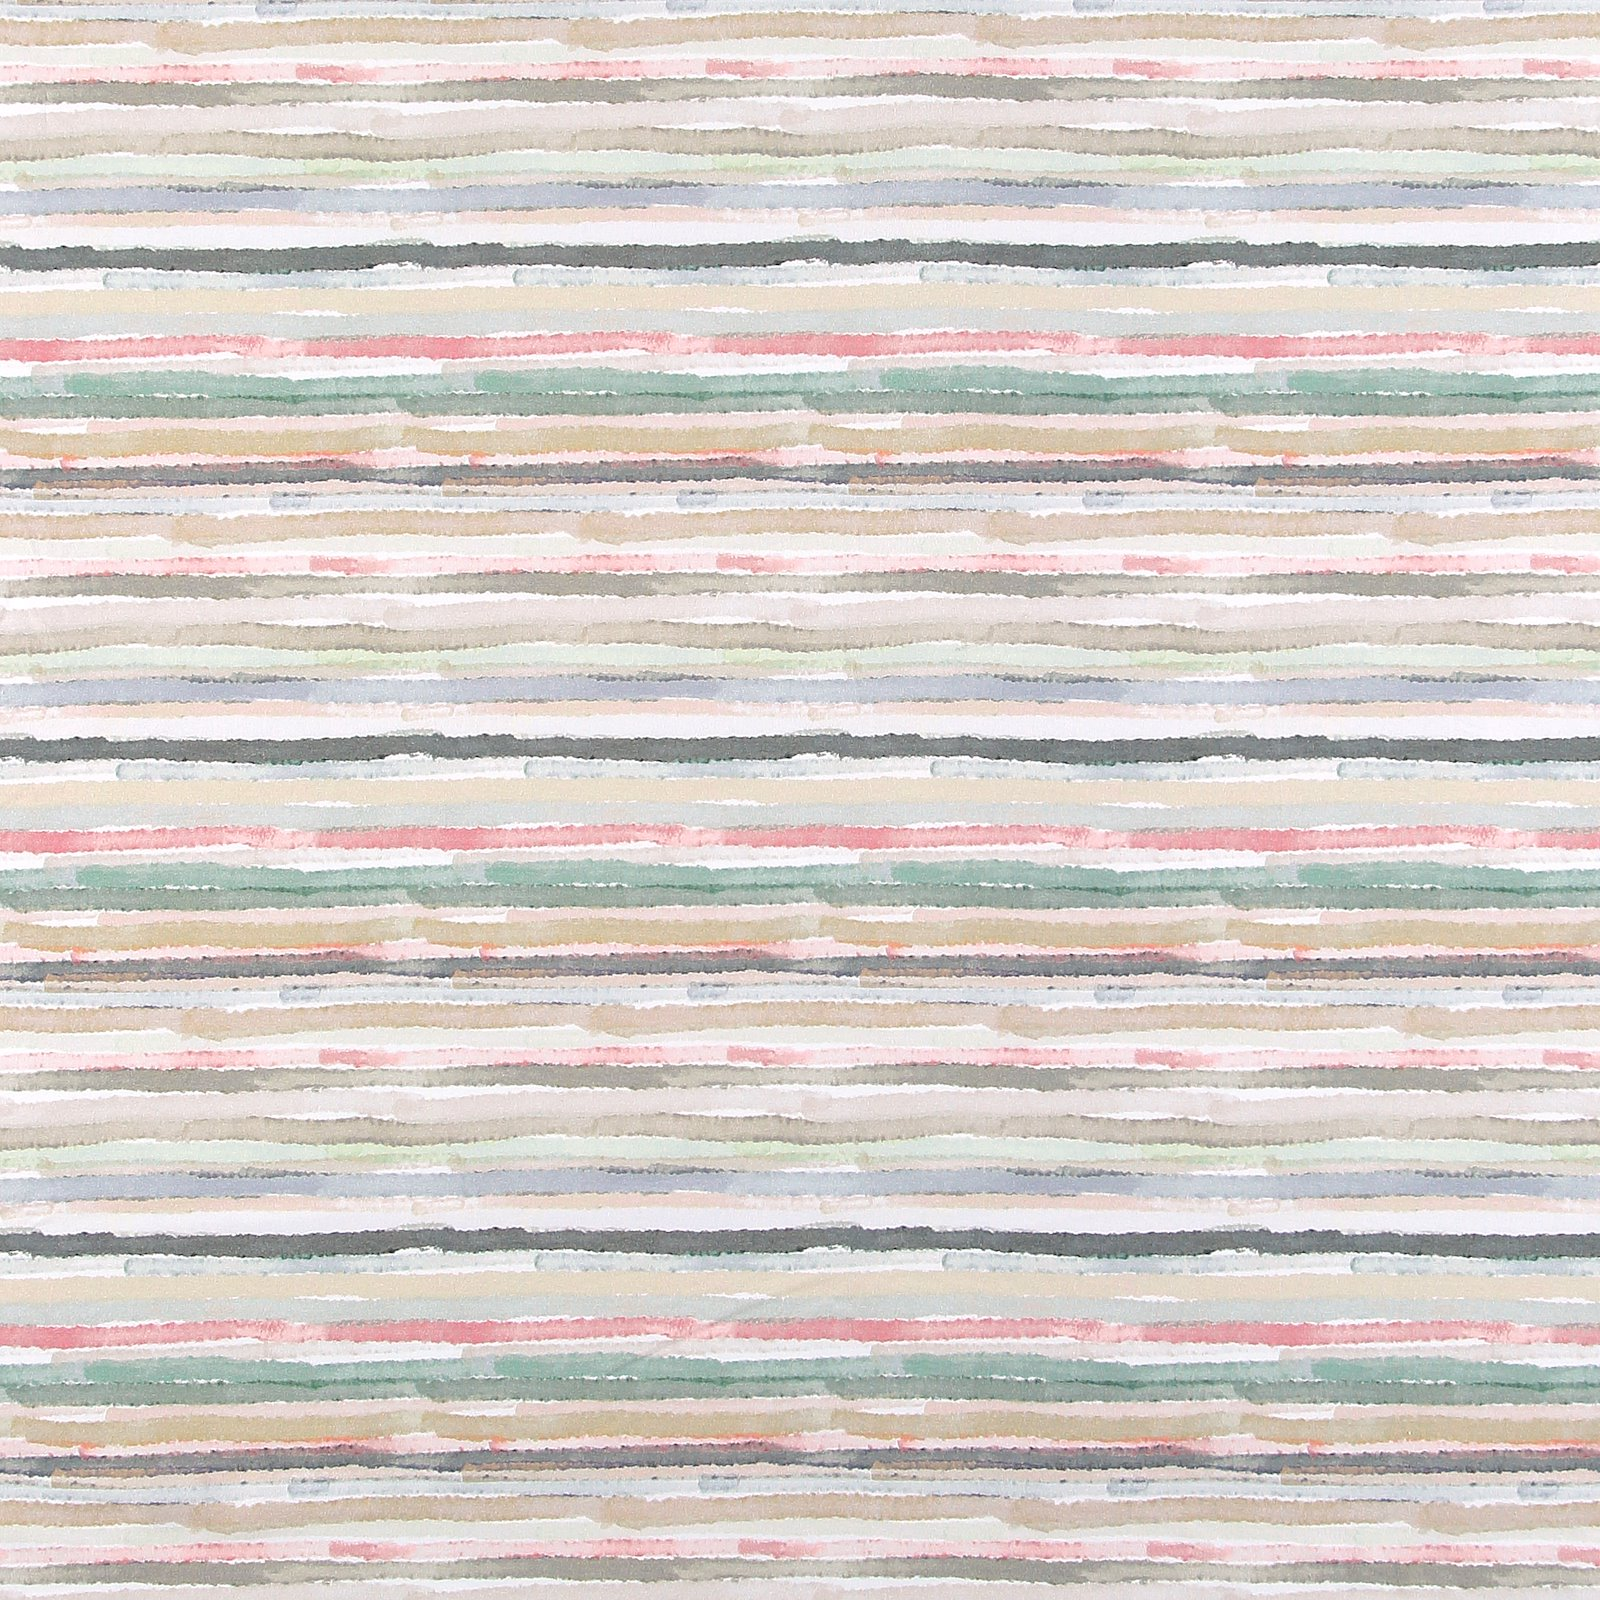 Organic st jersey w multicolored stripes 272808_pack_sp